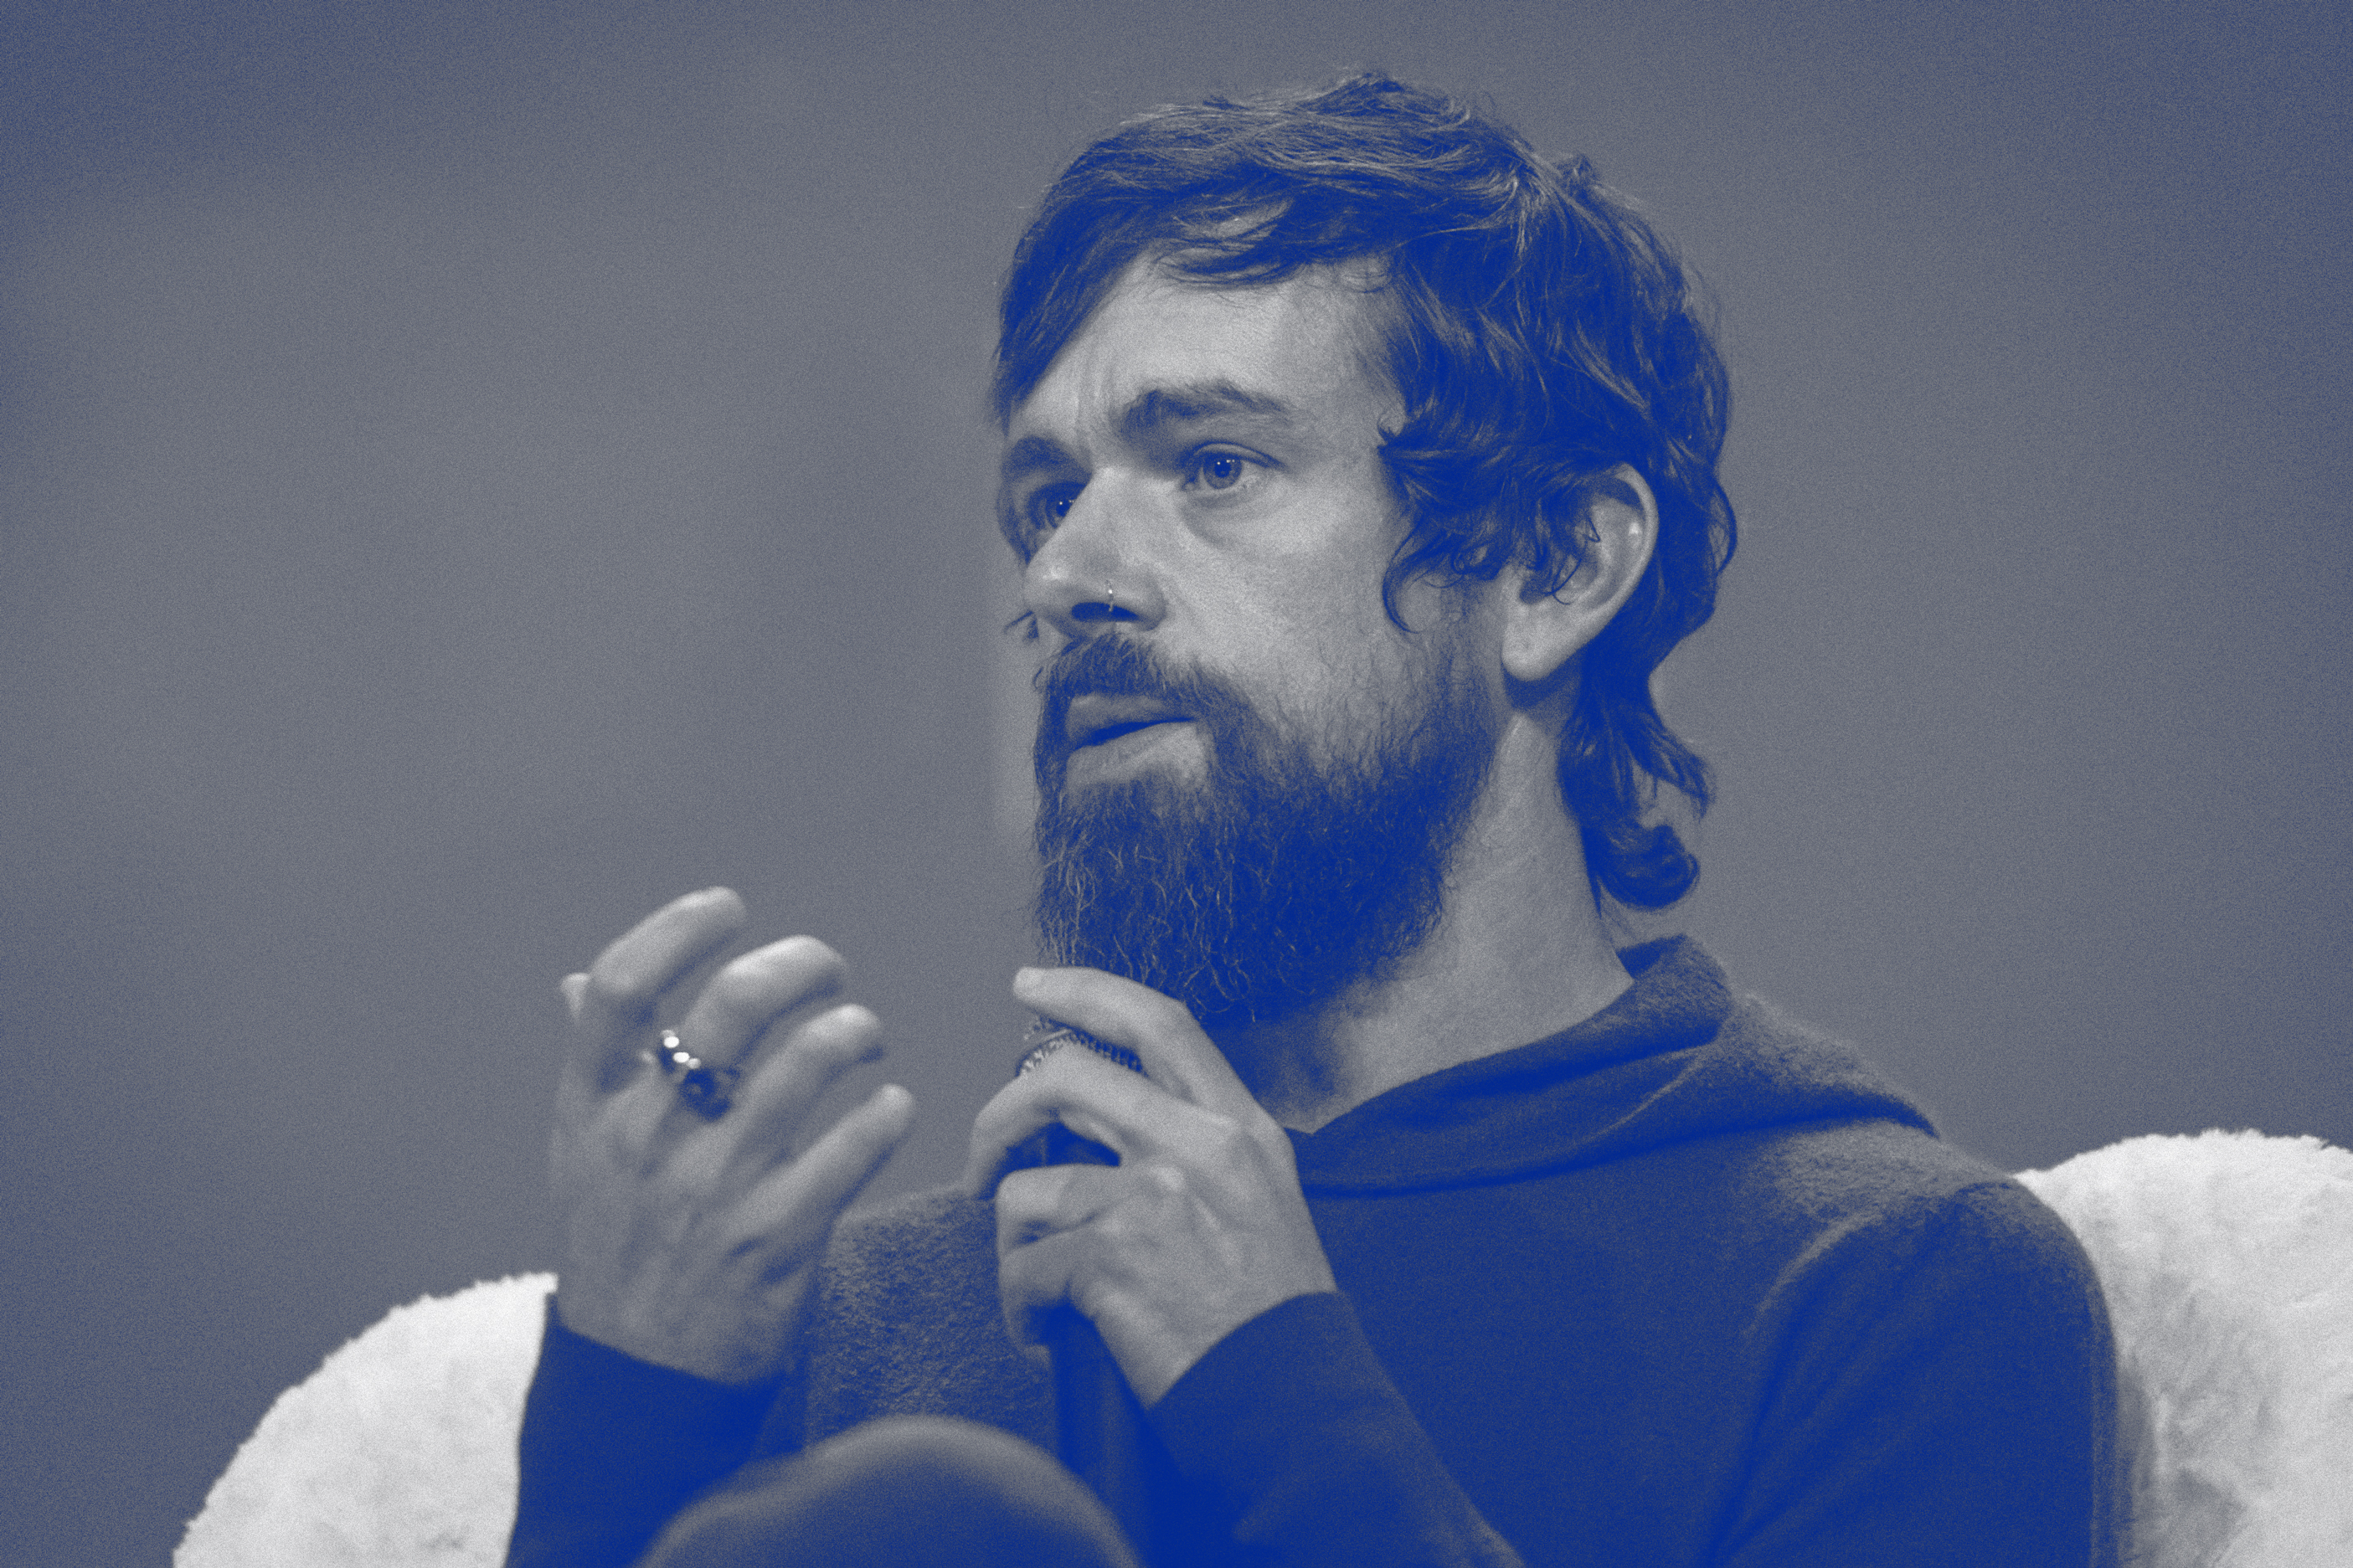 Twitter's Jack Dorsey talks hack response and hate speech during P&G forum